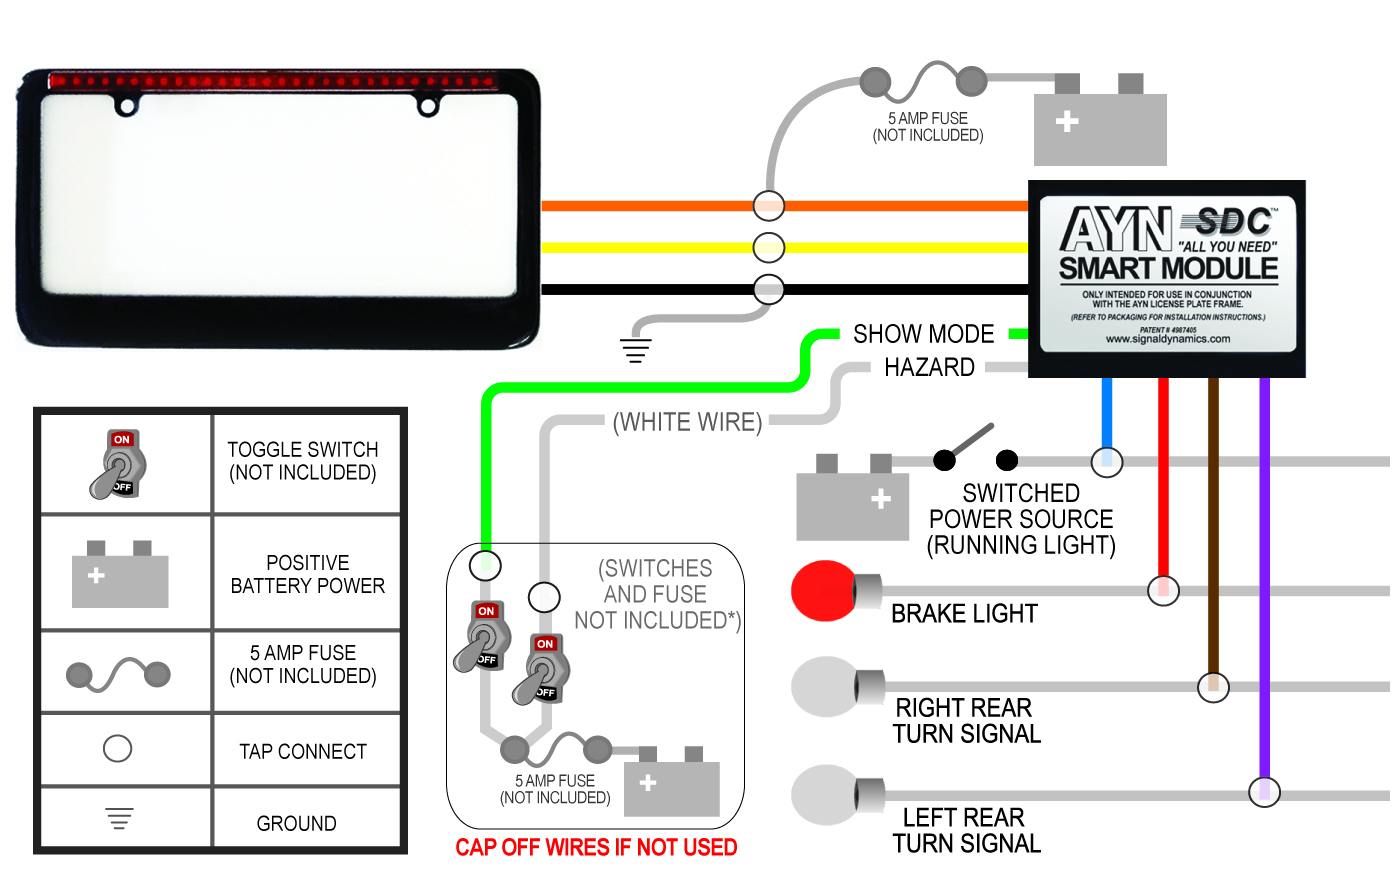 everlasting turn signal switch wiring diagram wiring diagrams gm turn signal switch diagram generous everlasting turn signal wiring lead wire thermostat led turn signal wiring diagram basic turn signal wiring diagram awesome military turn signal